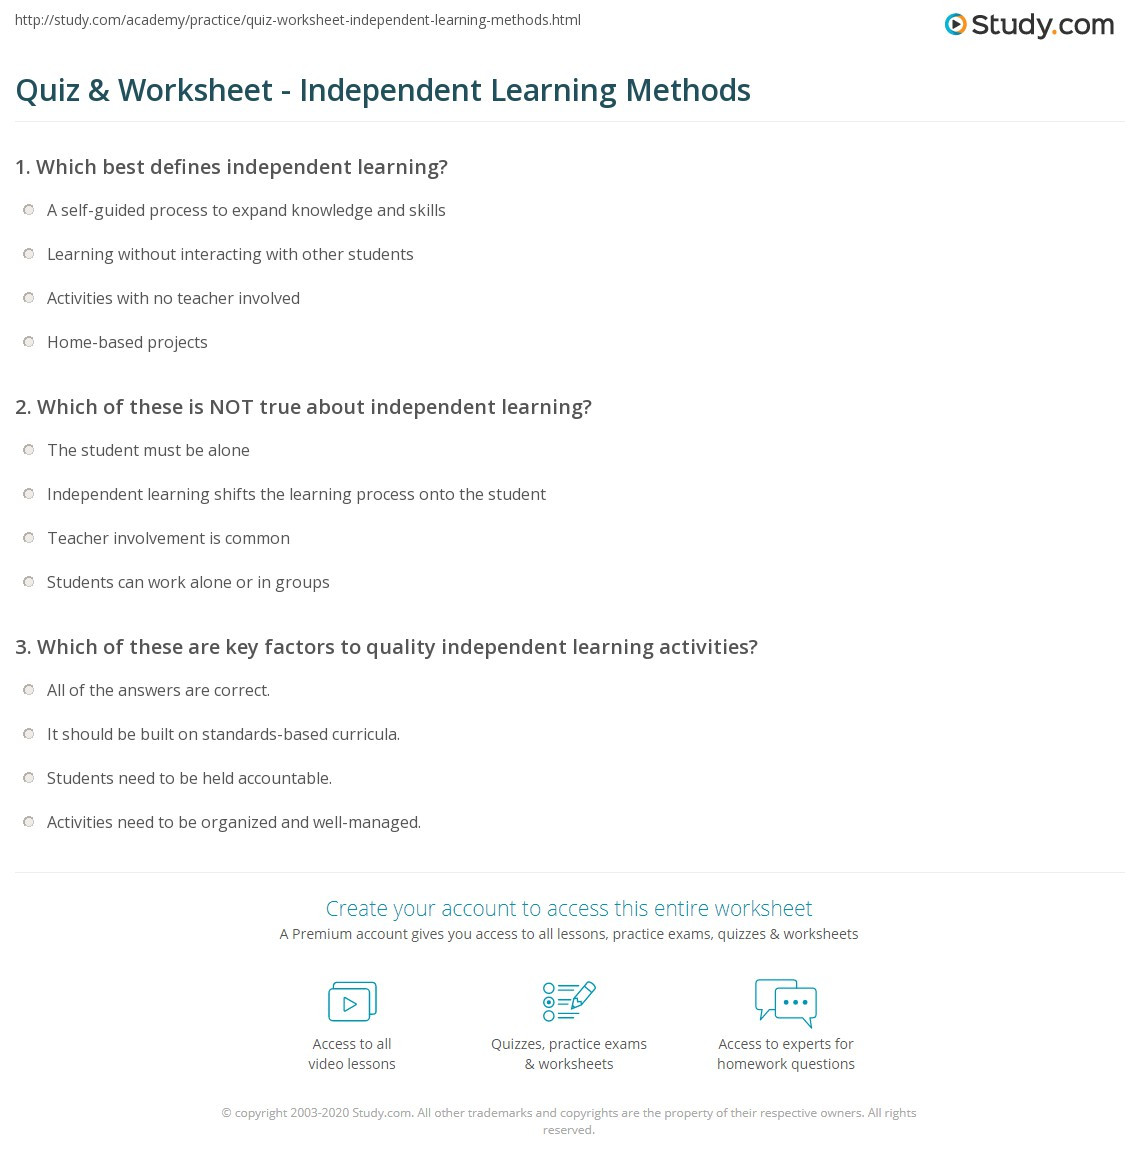 Peer Review Worksheet High School Quiz & Worksheet Independent Learning Methods